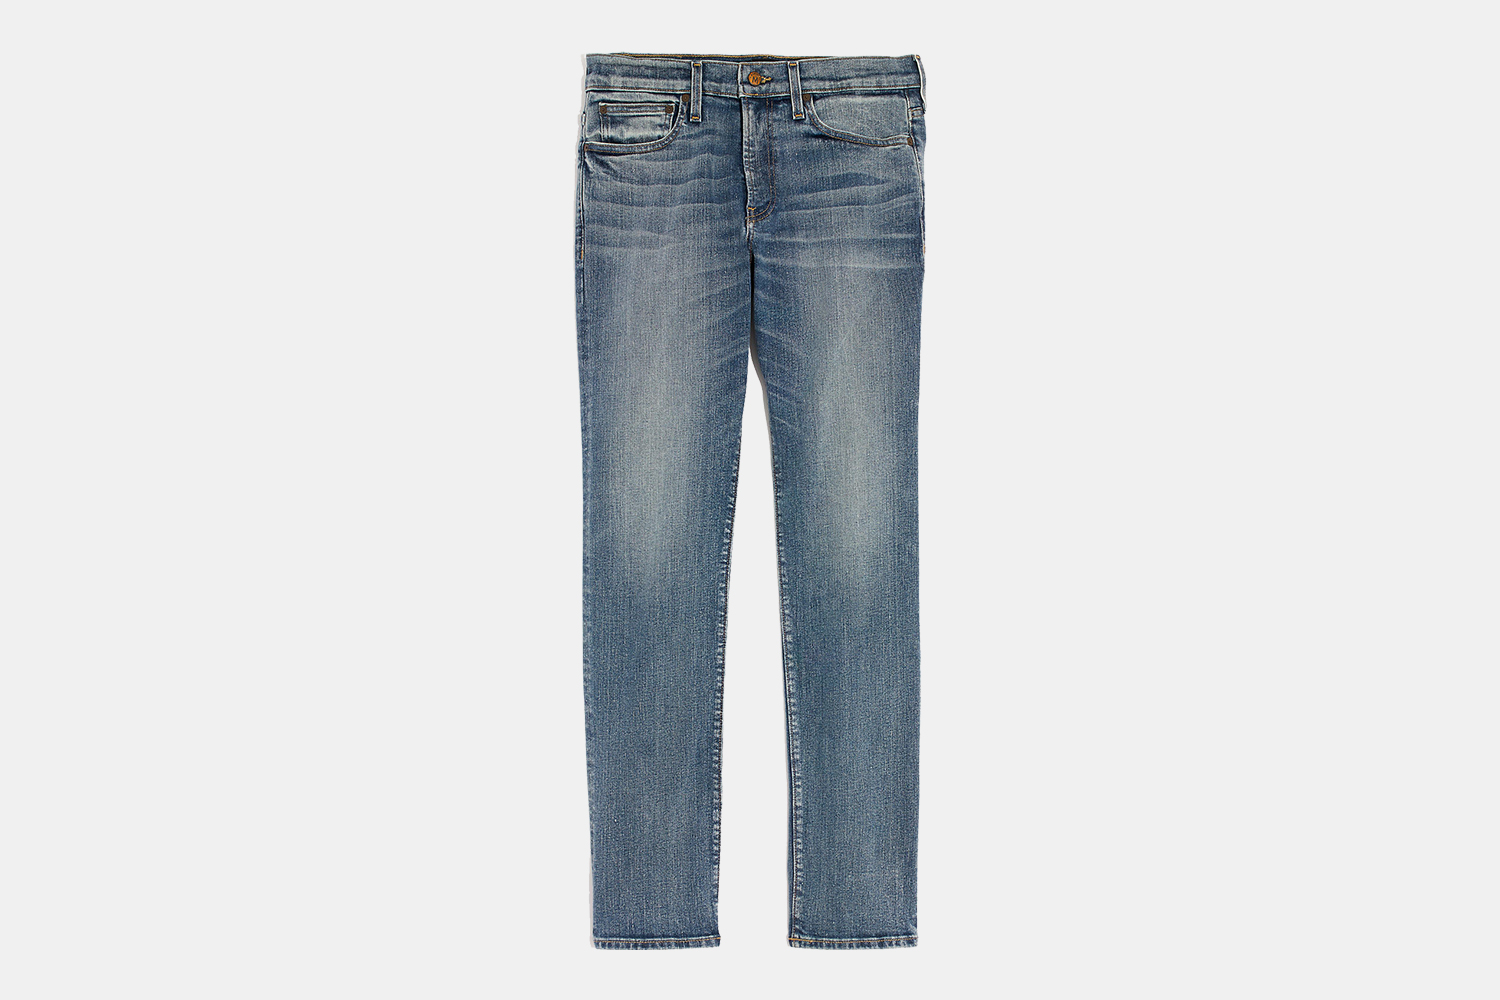 Madewell Men Slim Jeans in Danforth Wash